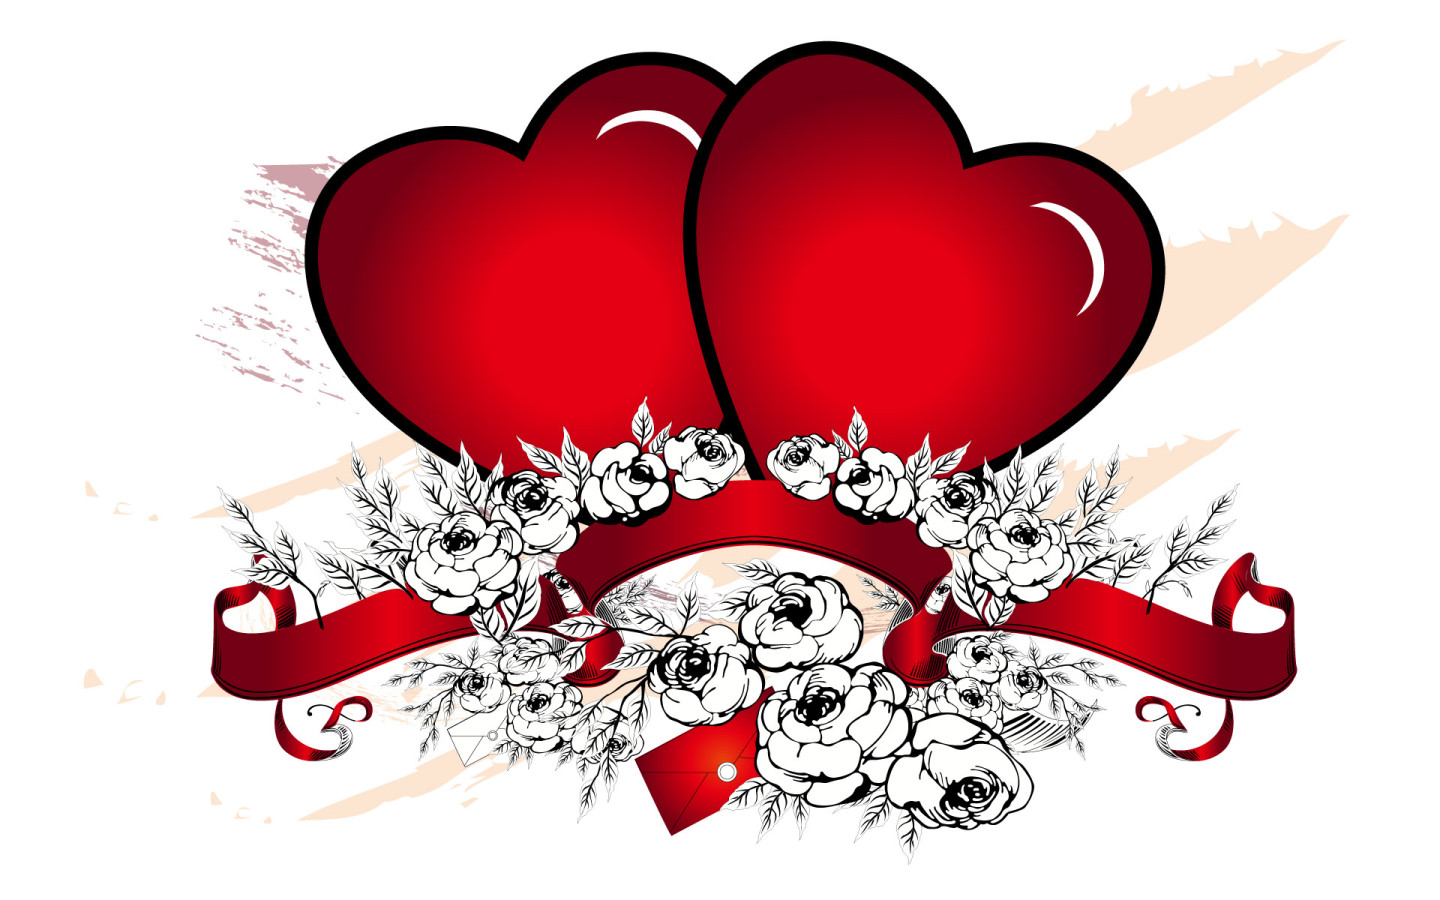 Valentines day glossy marble hearts clipart graphic download Images of Valentines Day Hearts - Best easter gift ever graphic download